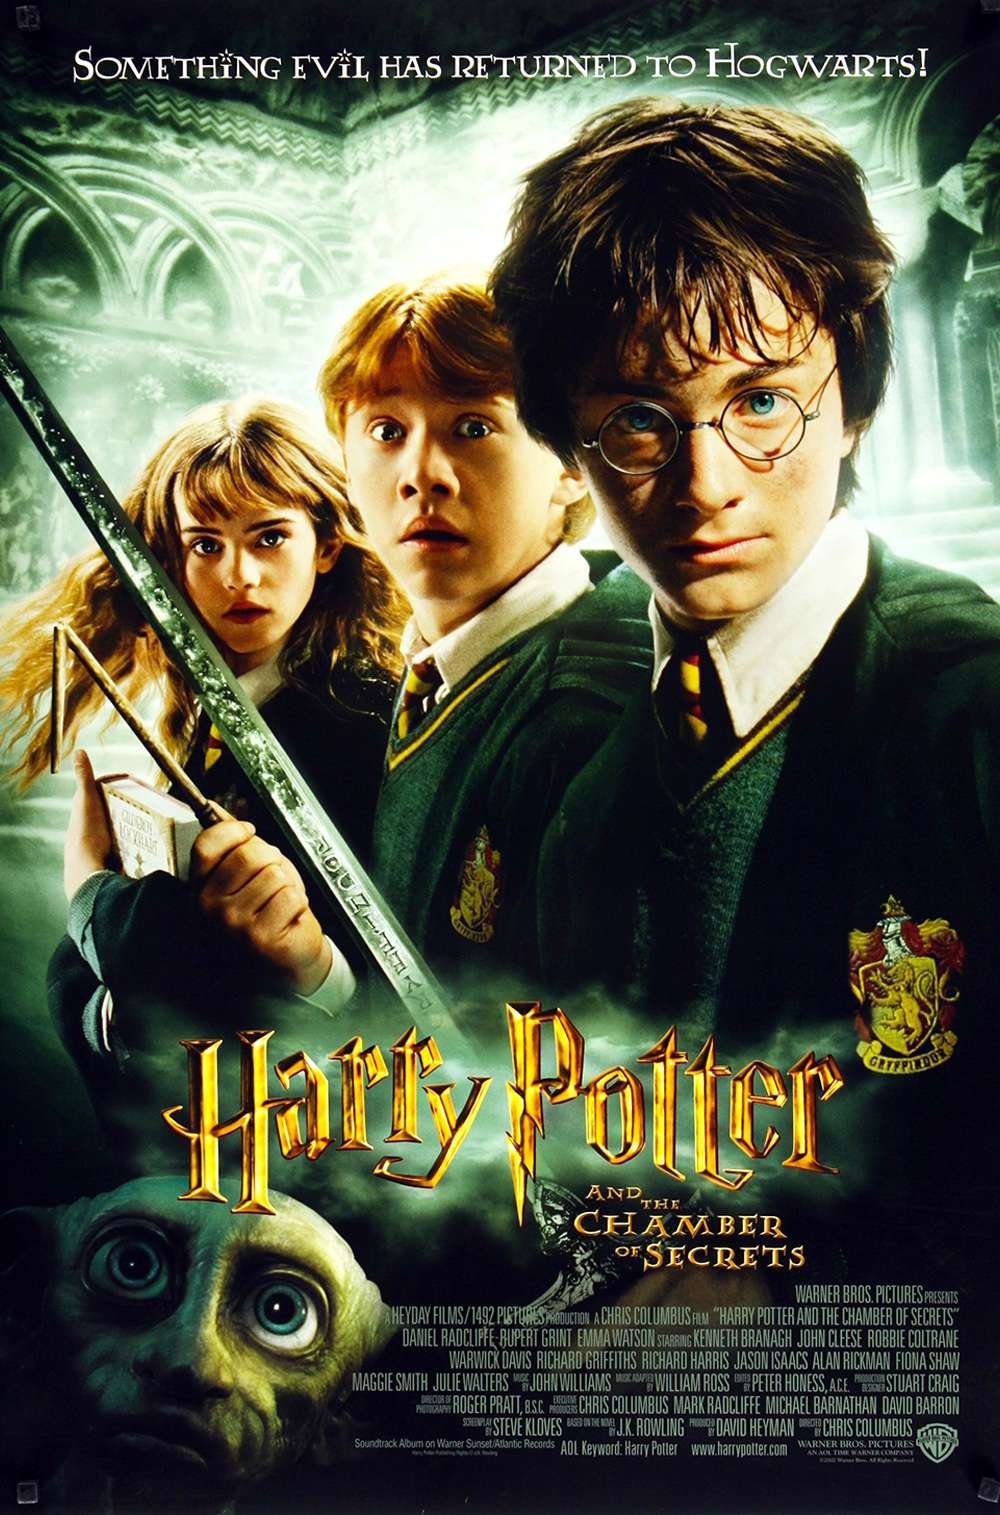 Poster for Harry Potter and the Chamber of Secrets (2002)